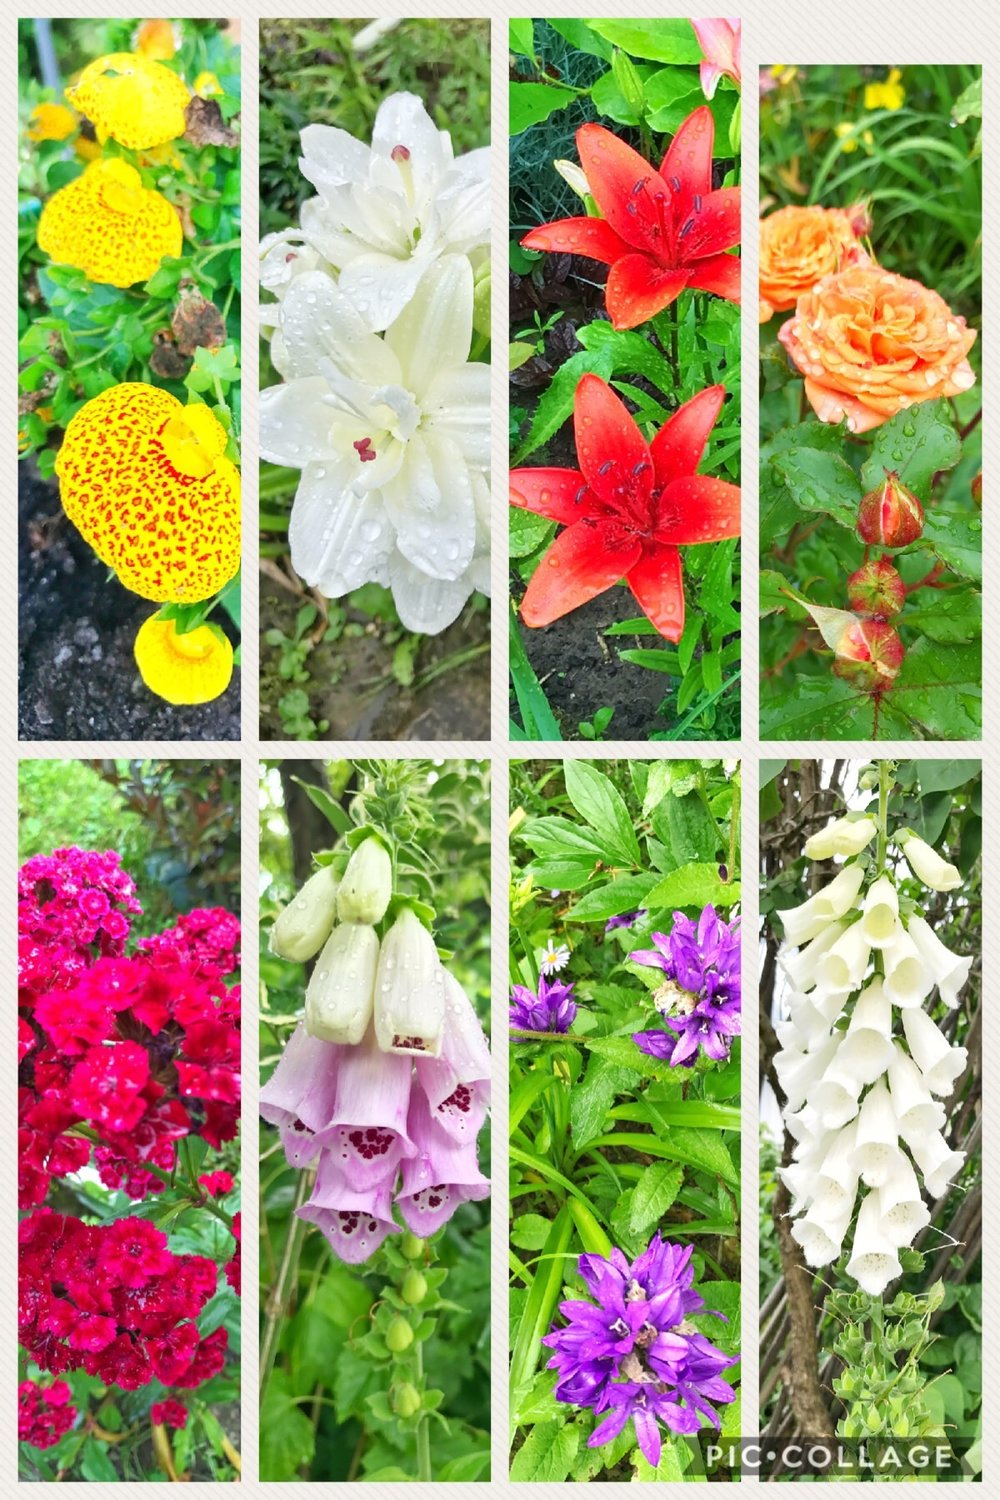 All of these beauties were found in a lovely garden of one of the homes we visit each year. It was definitely a highlight of the trip to gaze on God's amazing creations. :)